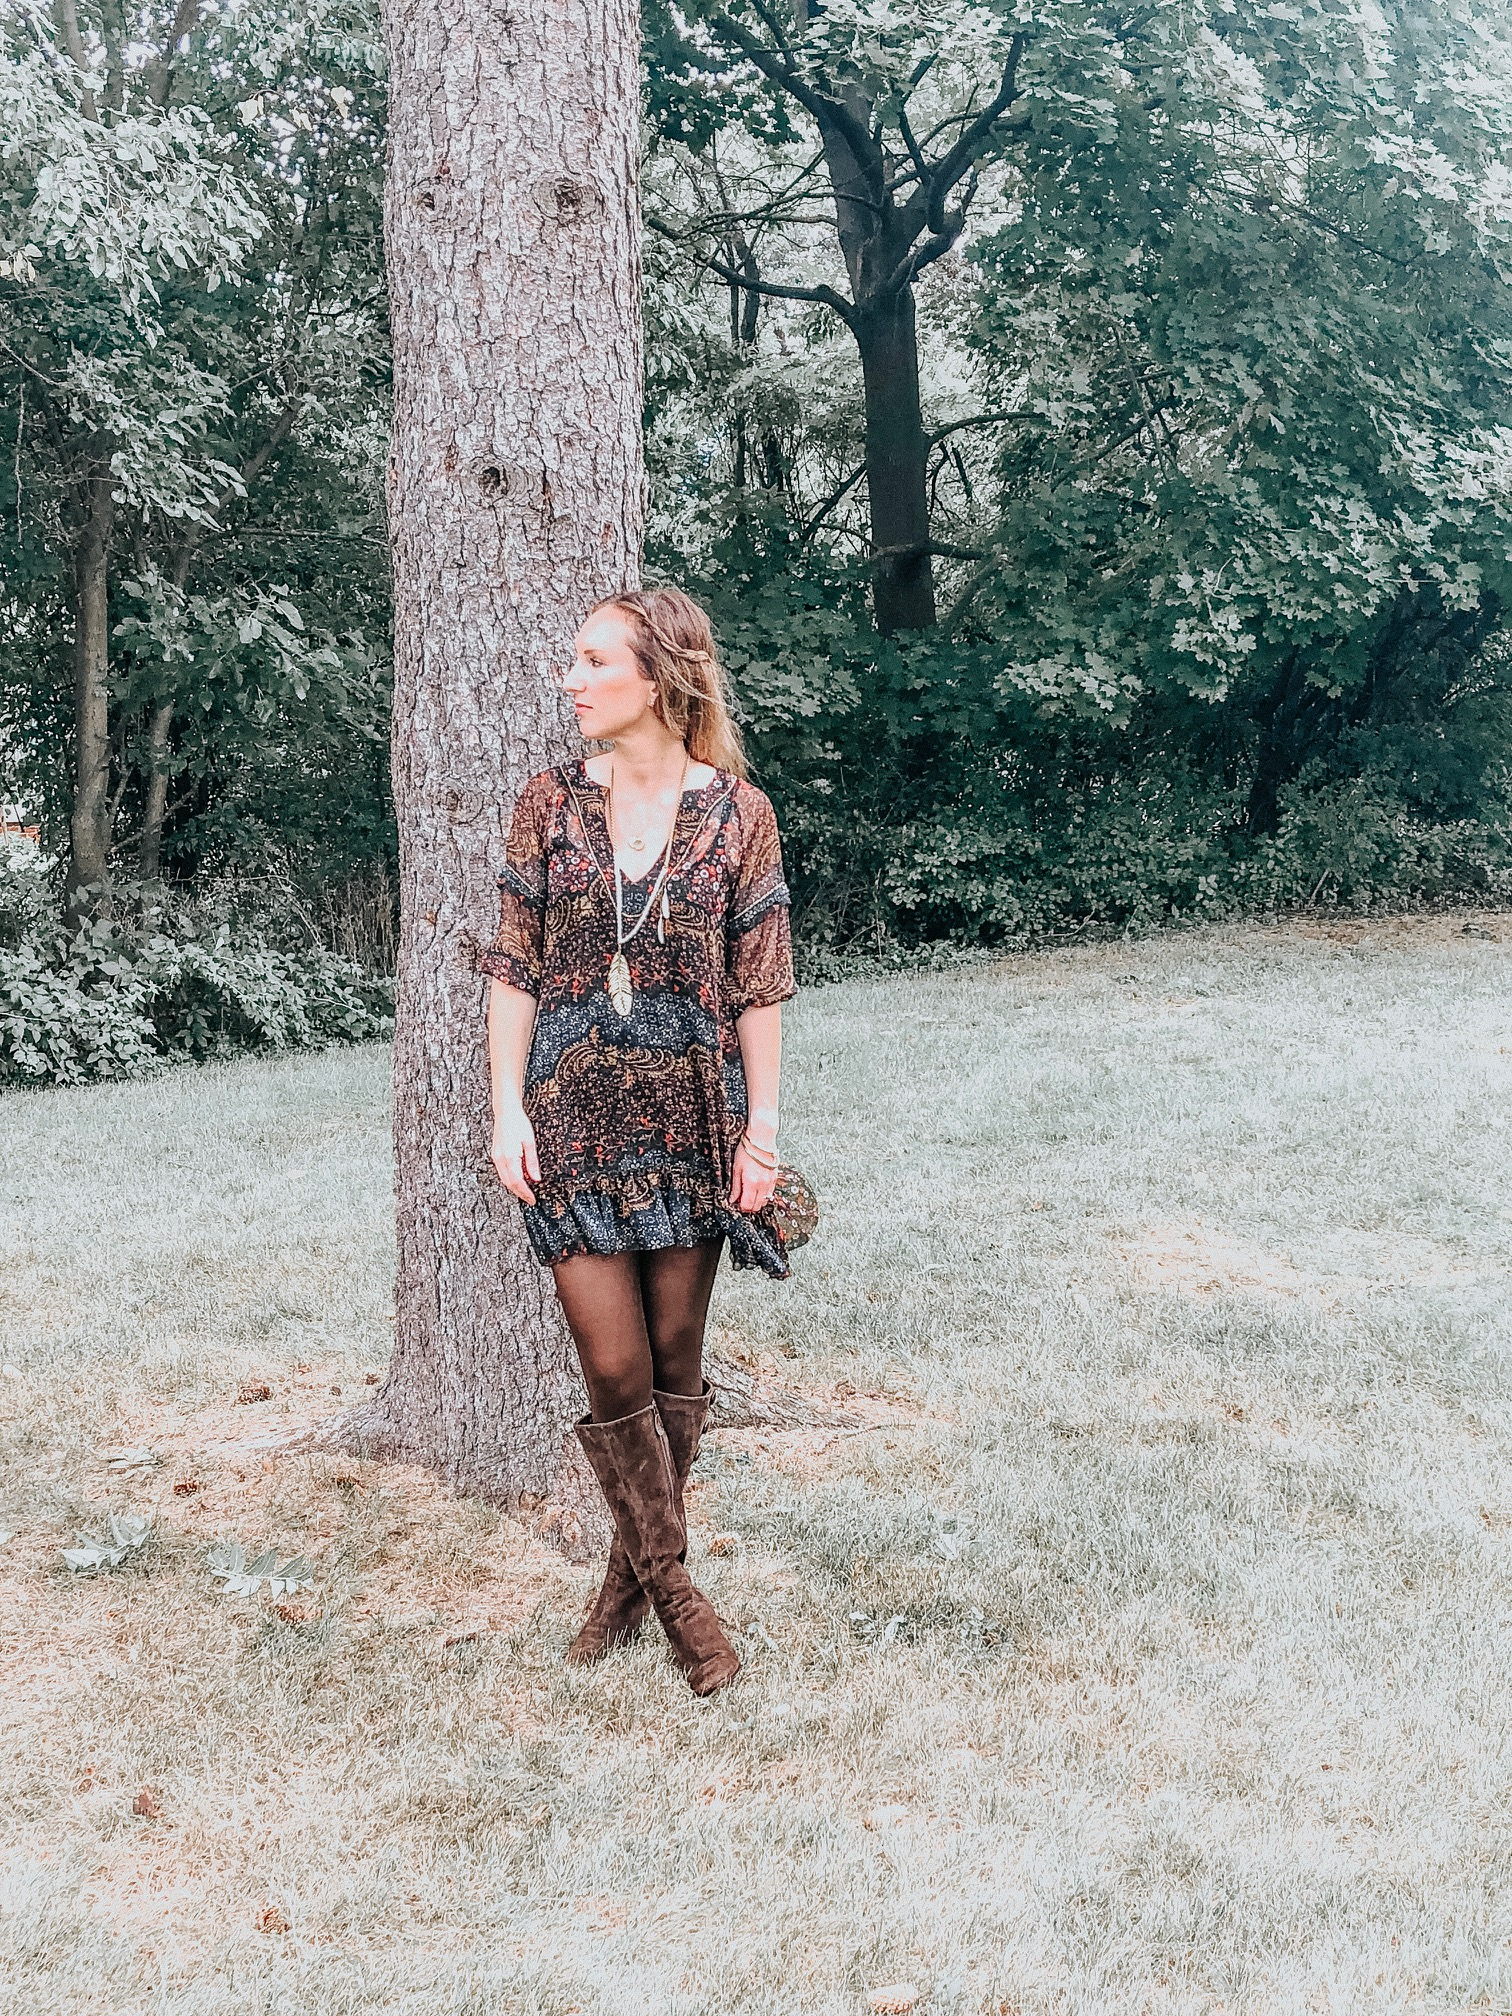 Fall Instagram Favorites | Daily Splendor Life and Style Blog | Boho Style Outfit #casualstyle #casualoutfit #momstyle #everydayfashion #fallstyle #fallneutrals